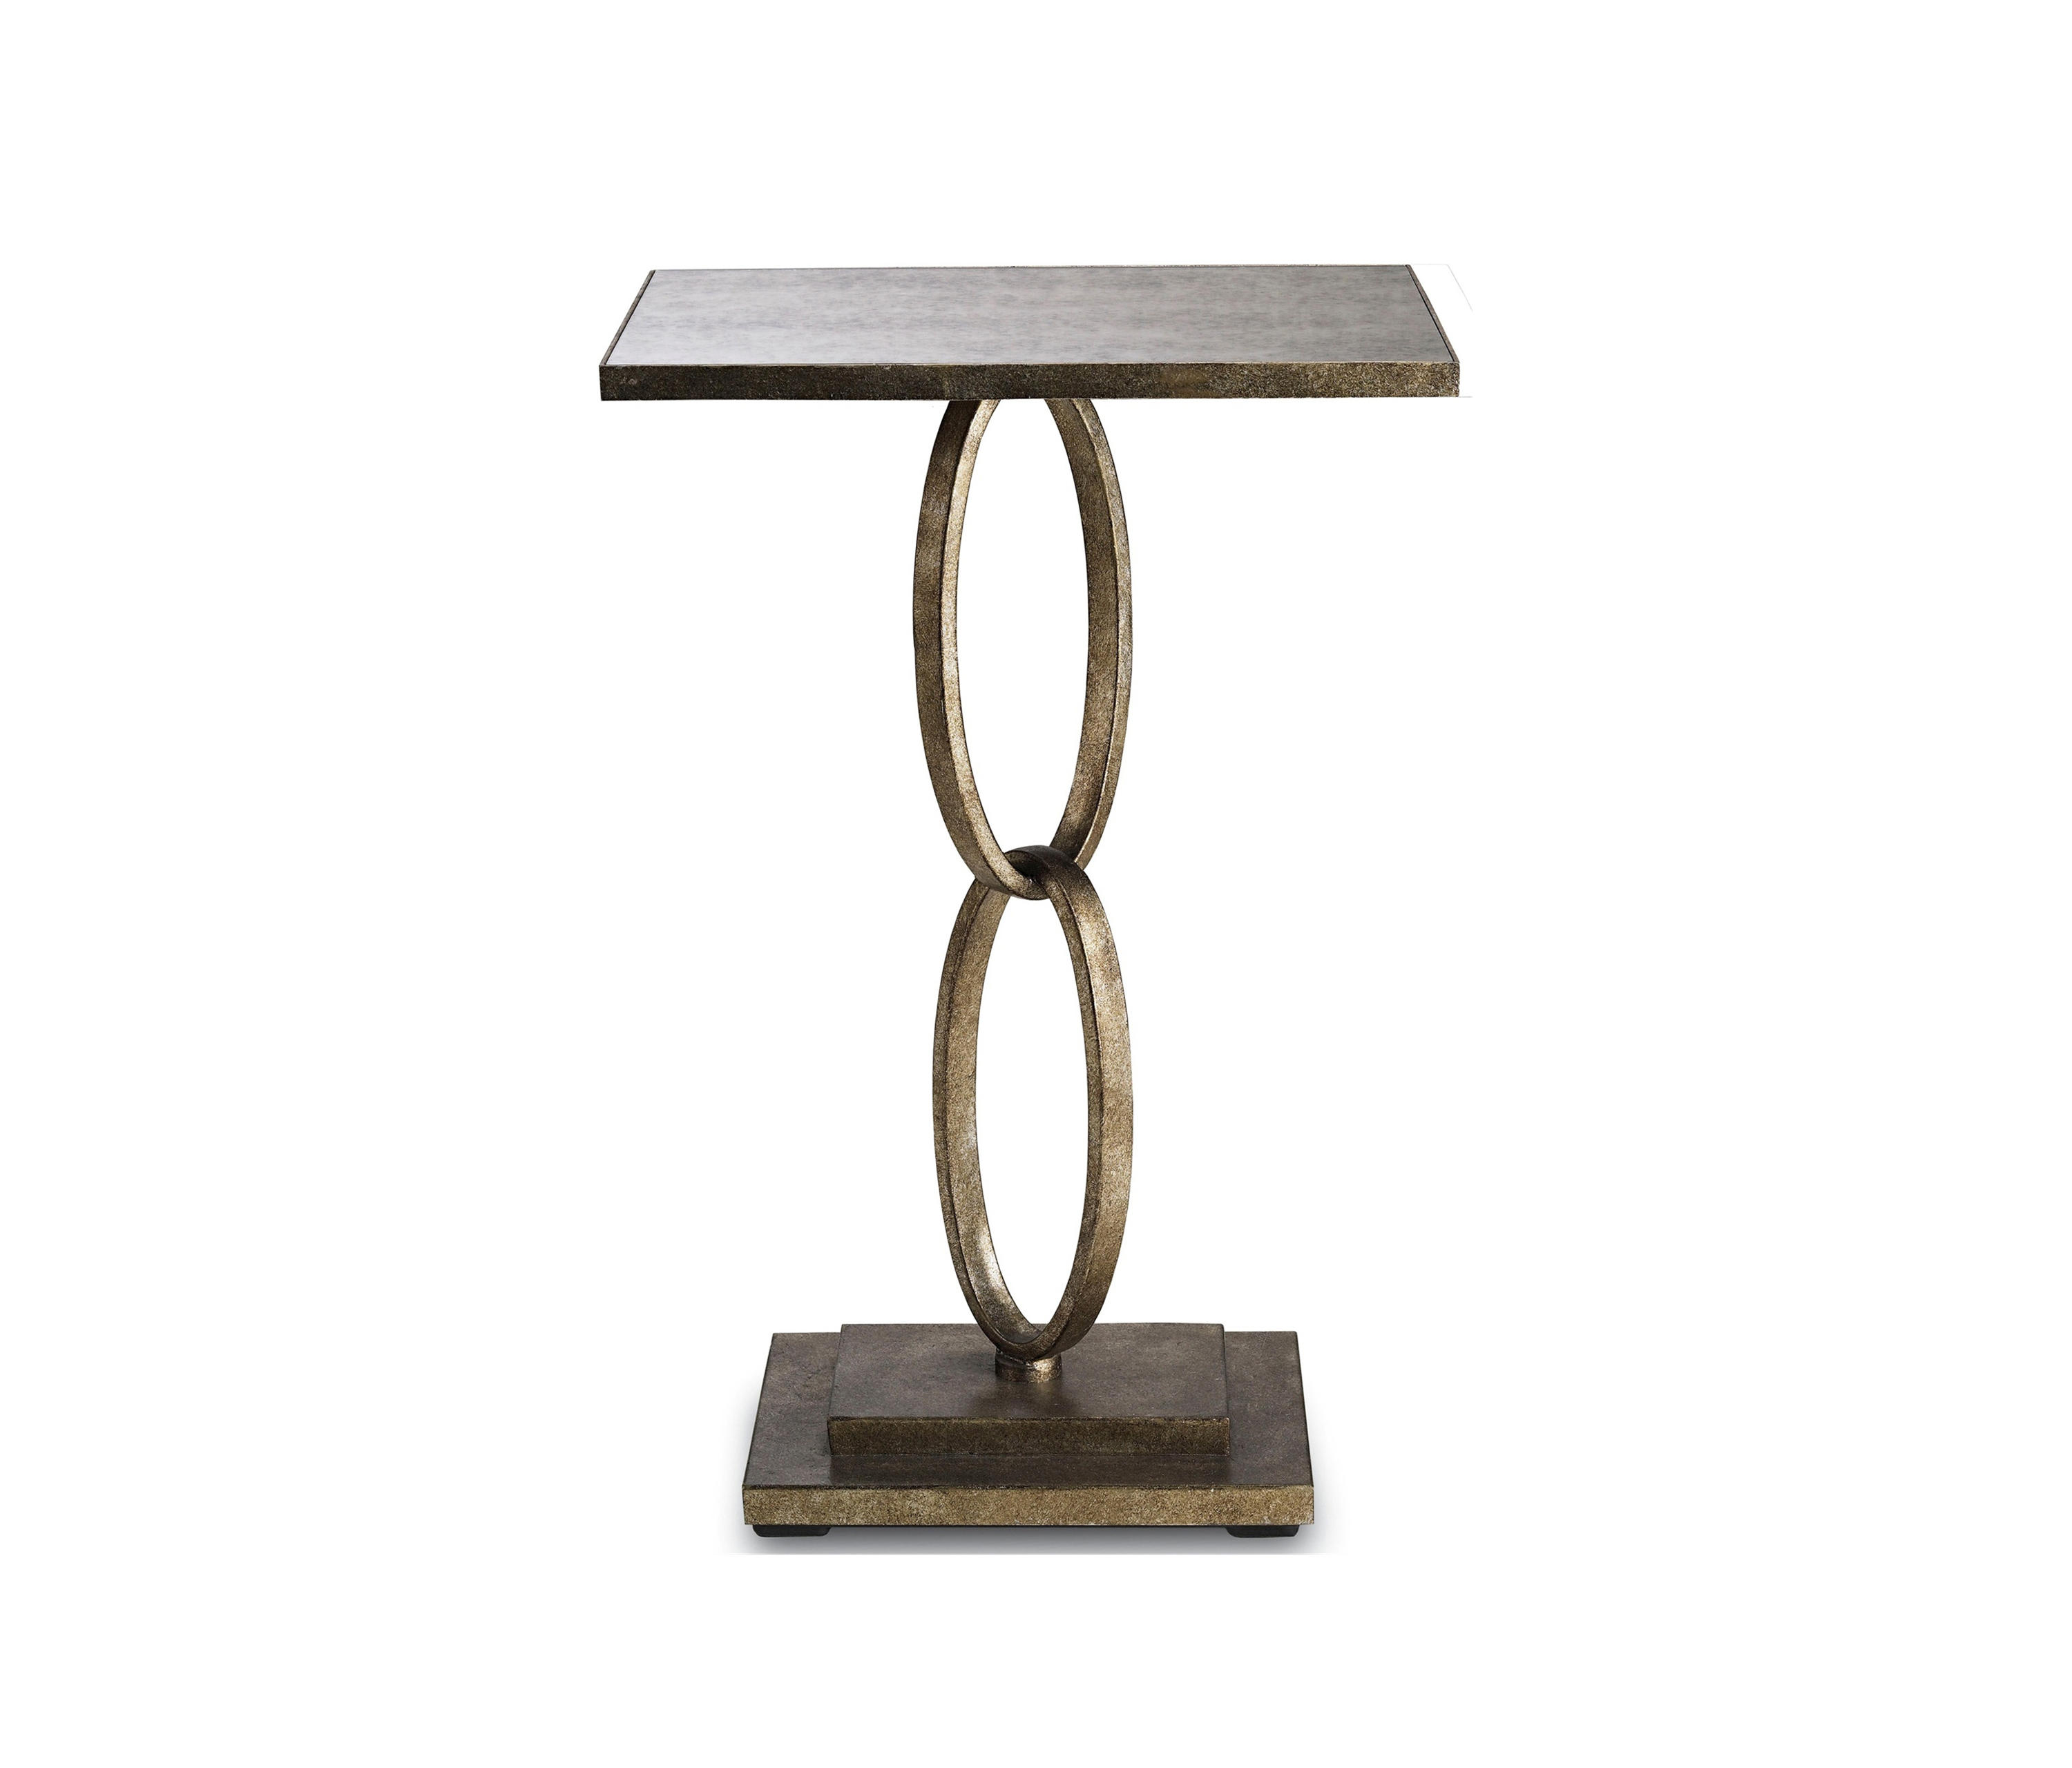 bangle accent table silver leaf side tables from currey company hayden furniture gold metal console plum tablecloth cylinder lamp ikea black cube storage iron pier buffet small